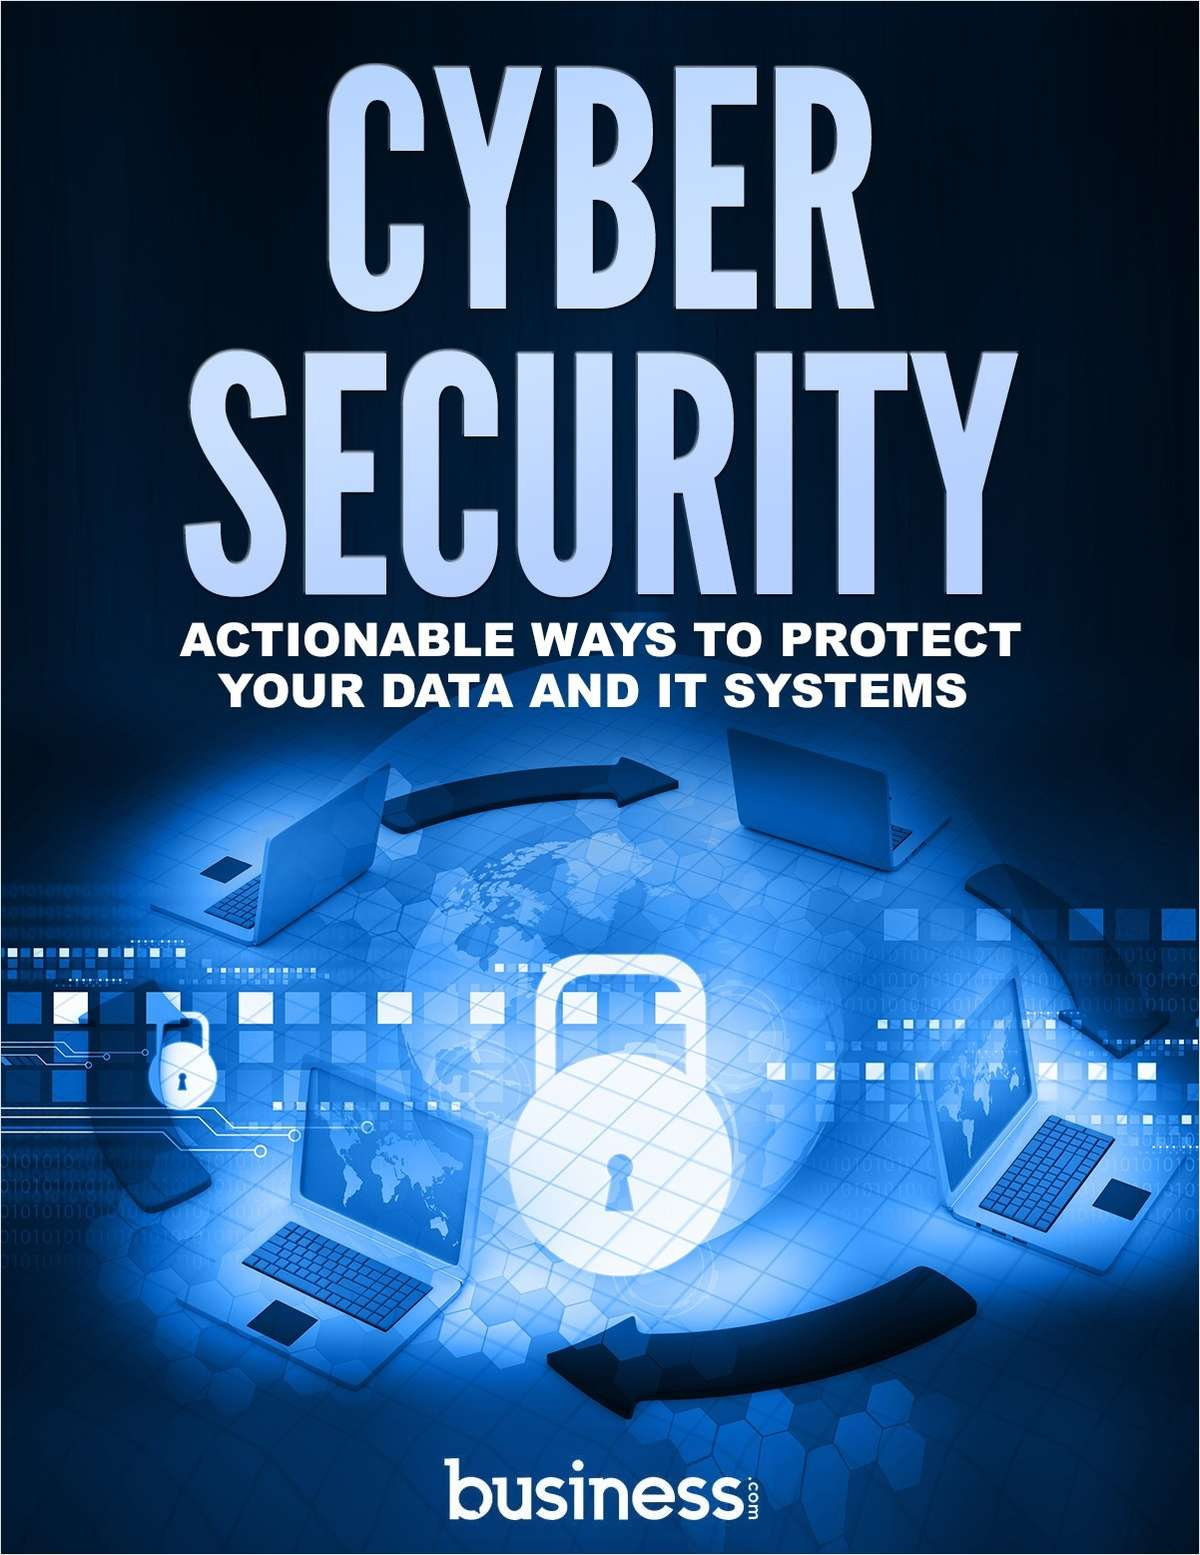 Cyber Security -  Actionable Ways to Protect Your Data and IT Systems